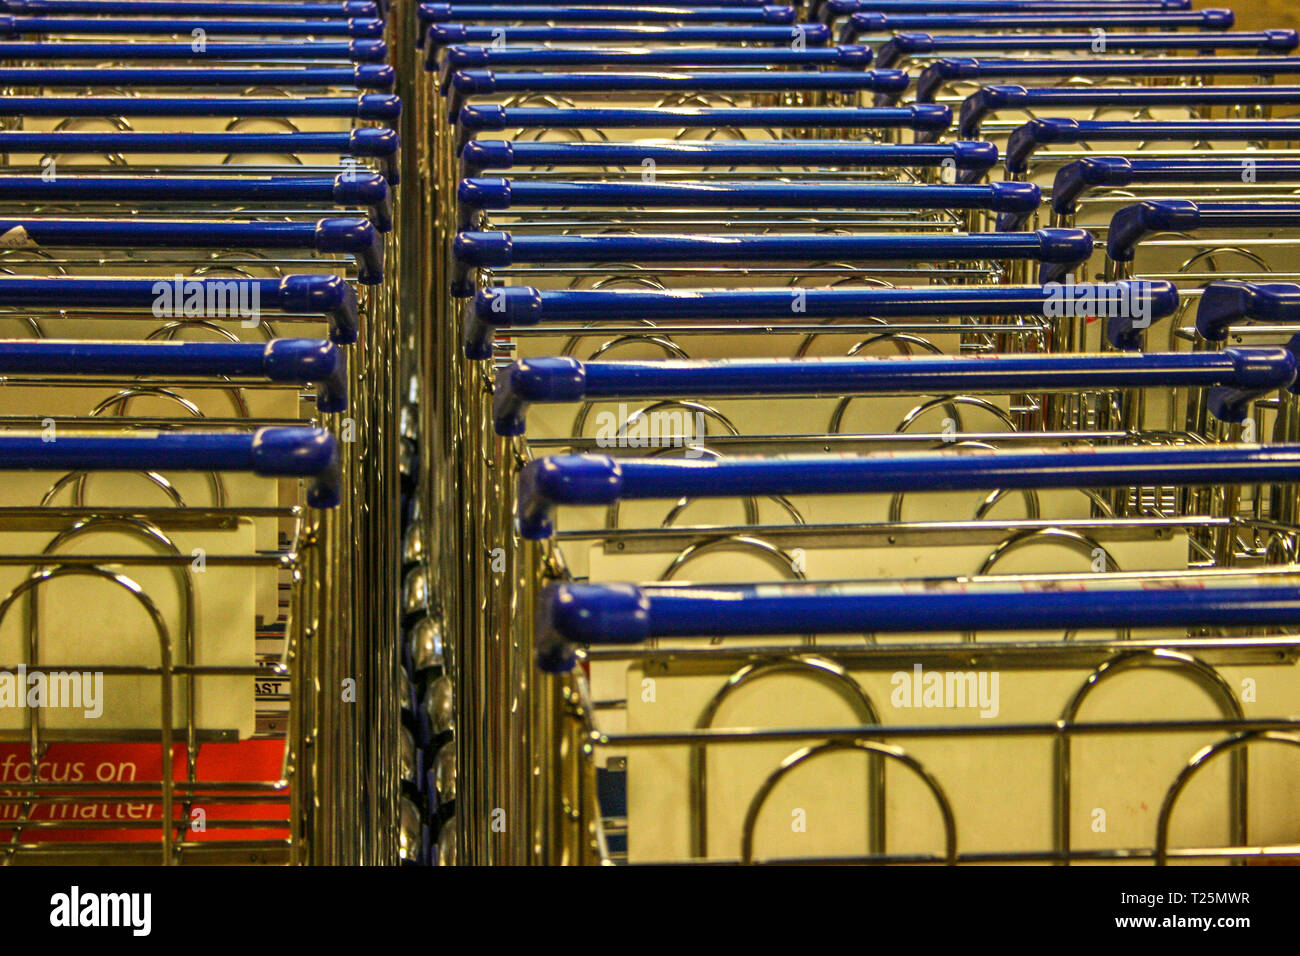 line of shopping trolleys with blue handrails in a shopping mall - structure - Stock Image